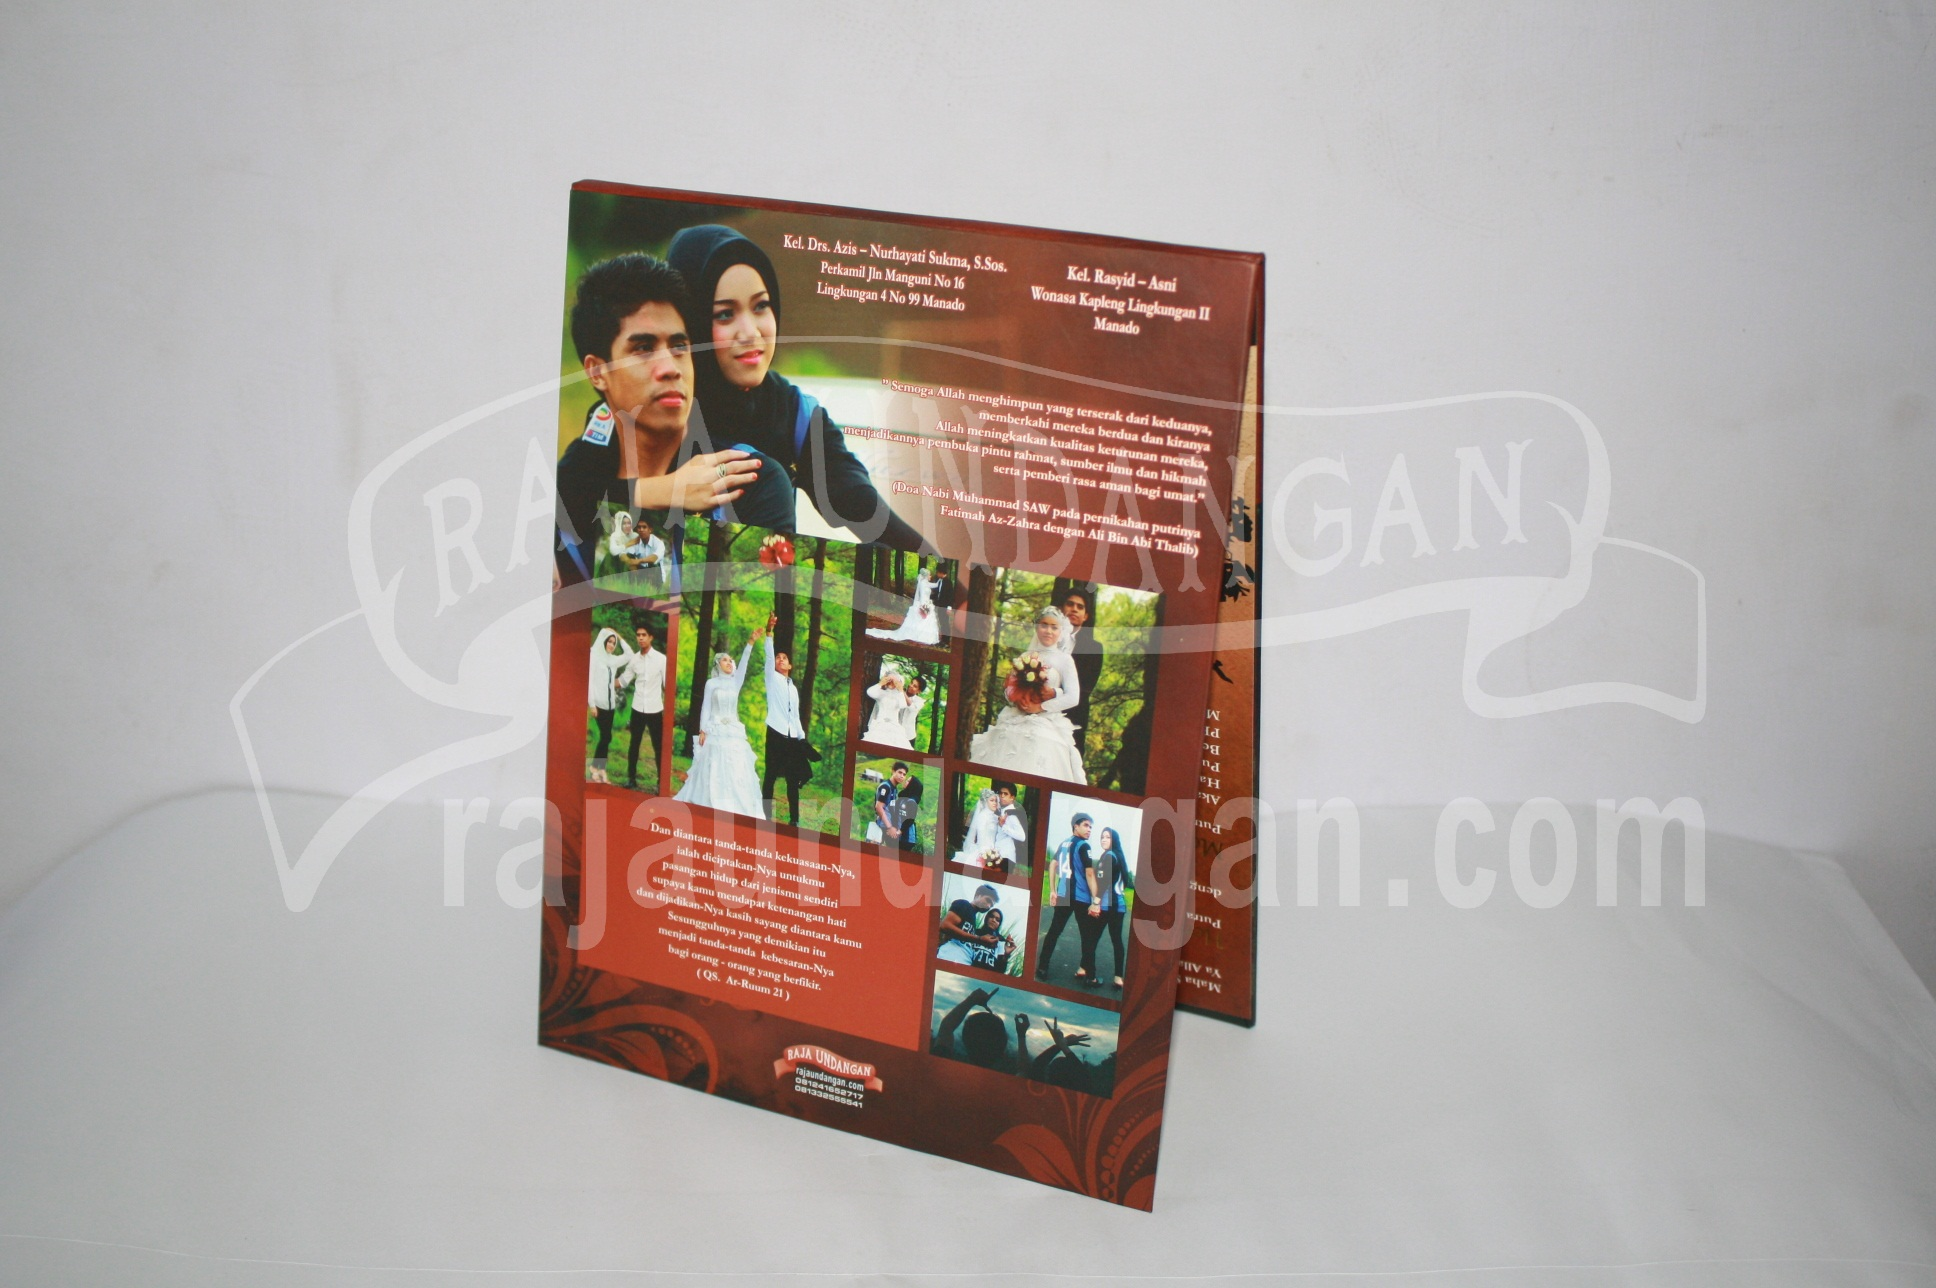 Undangan Pernikahan Hardcover Pop Up Heri dan Mona EDC 43 13 - Percetakan Wedding Invitations Unik dan Eksklusif di Tandes